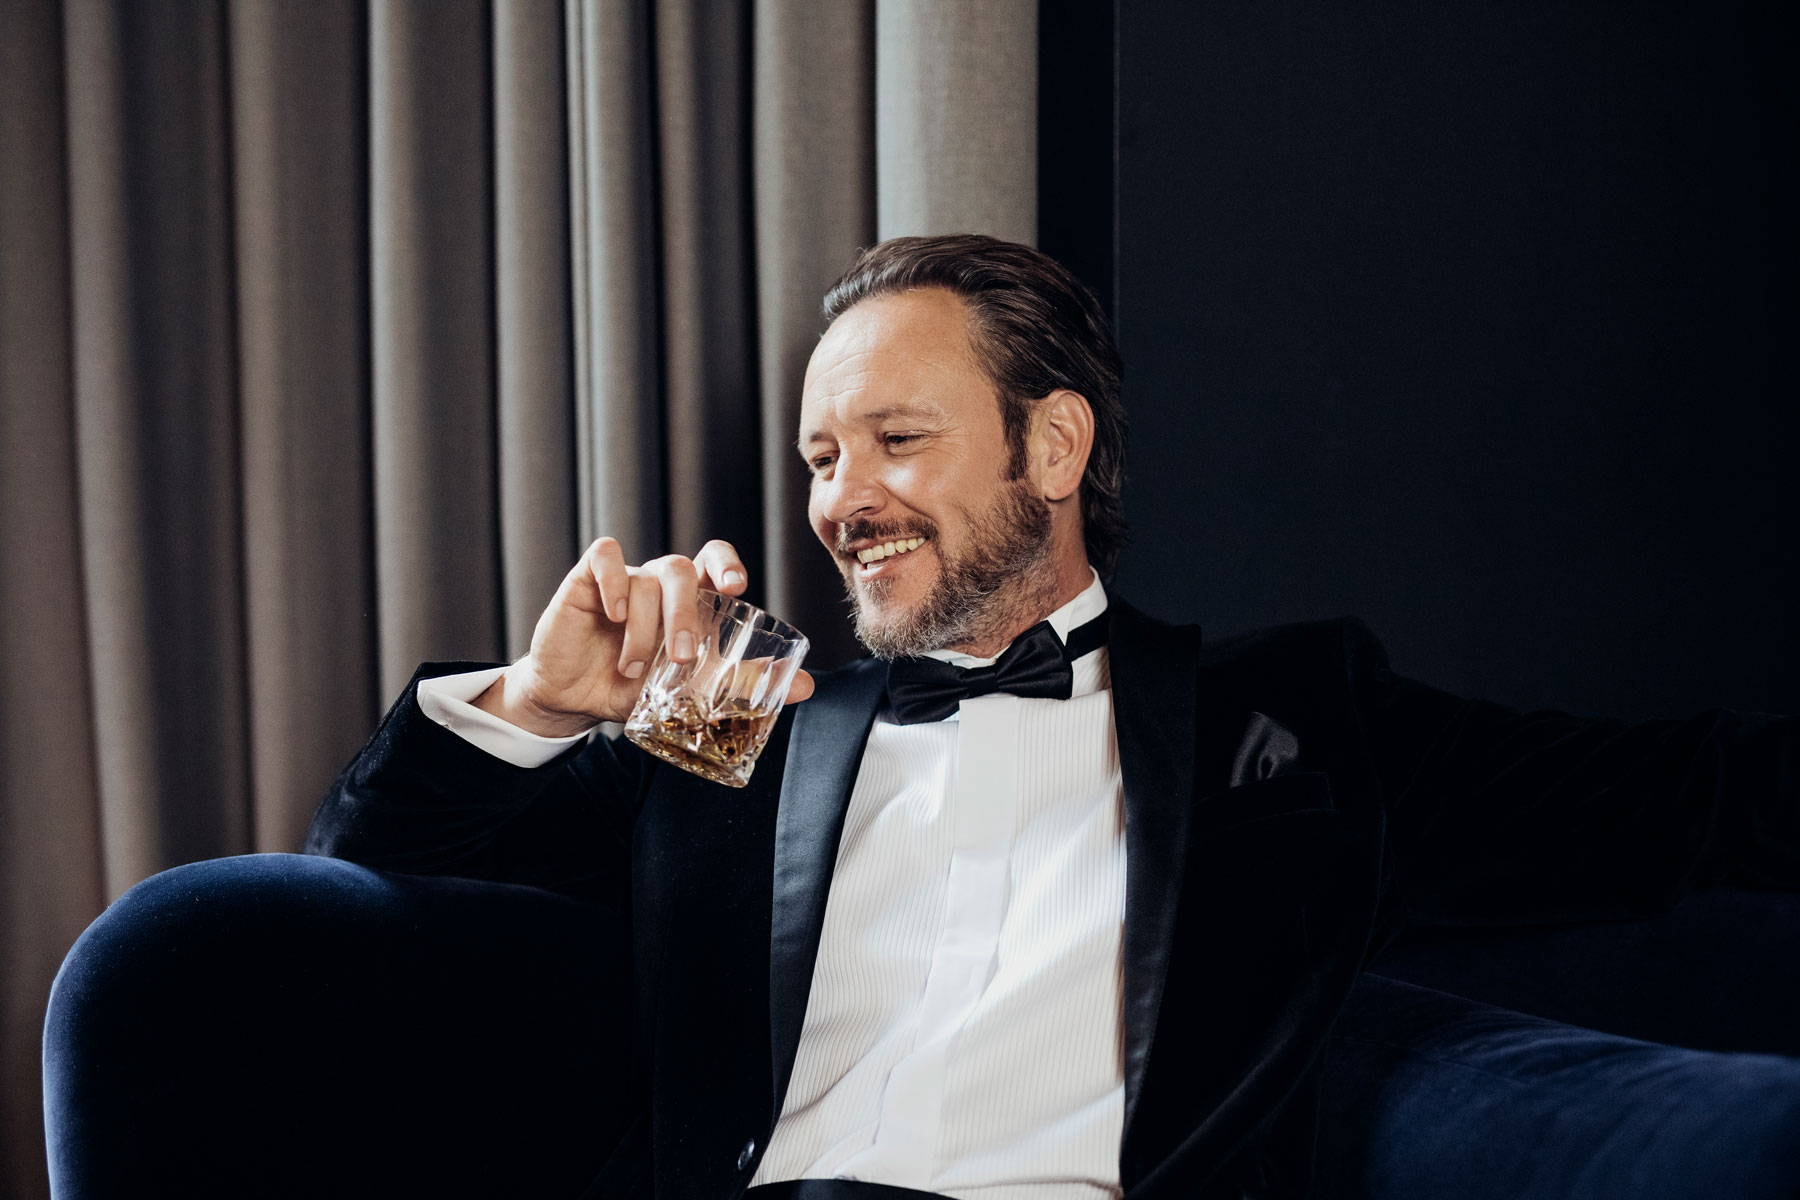 Gentleman drinking whiskey in suit